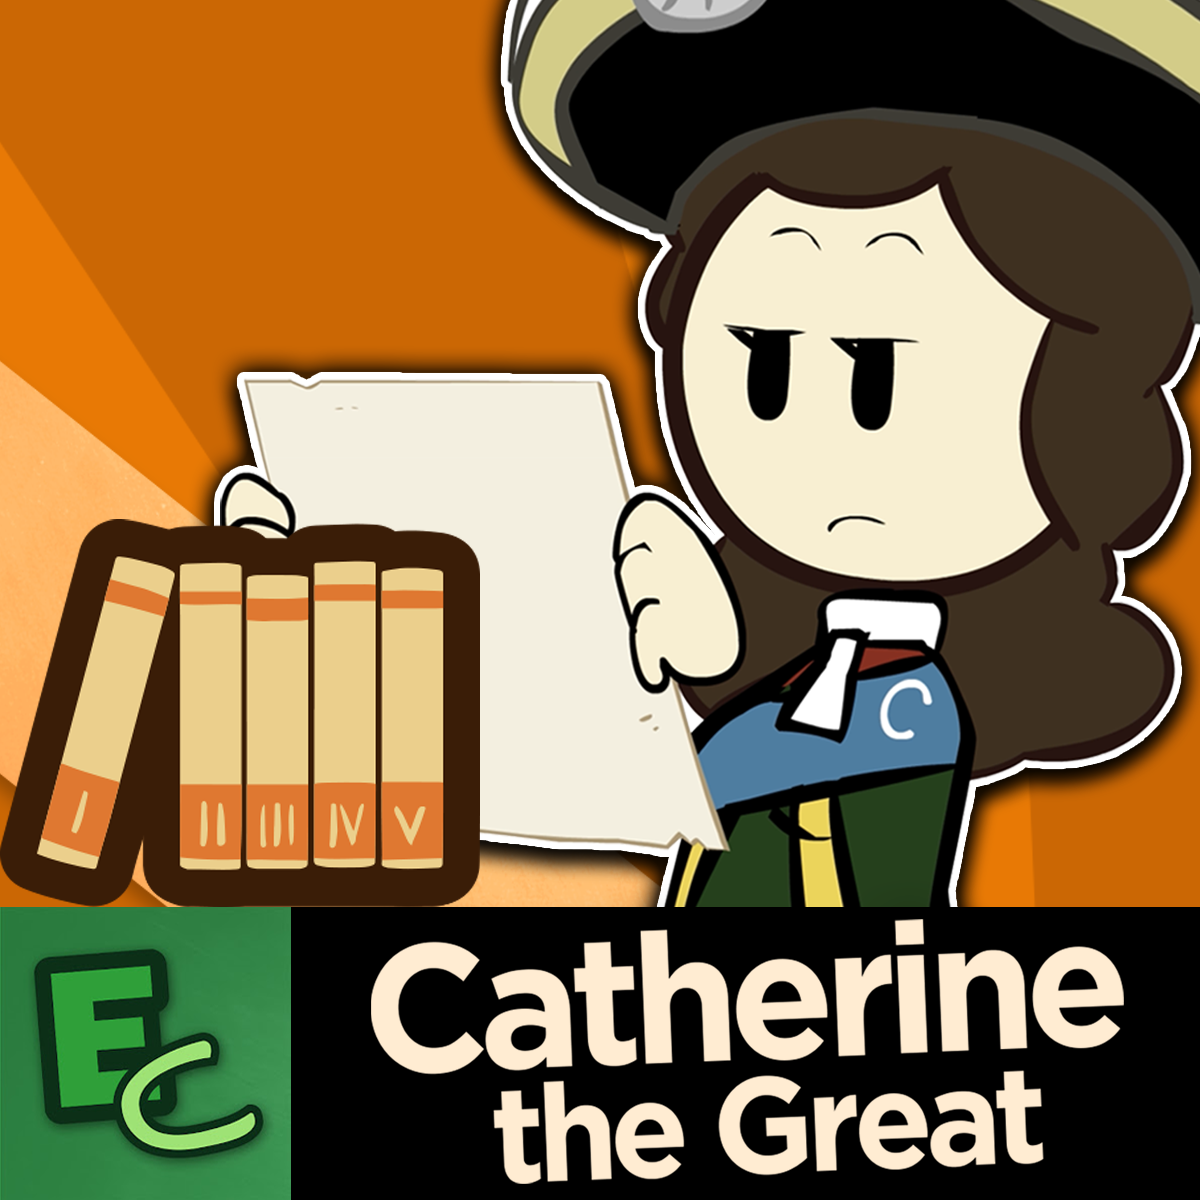 catherinethegreat.png